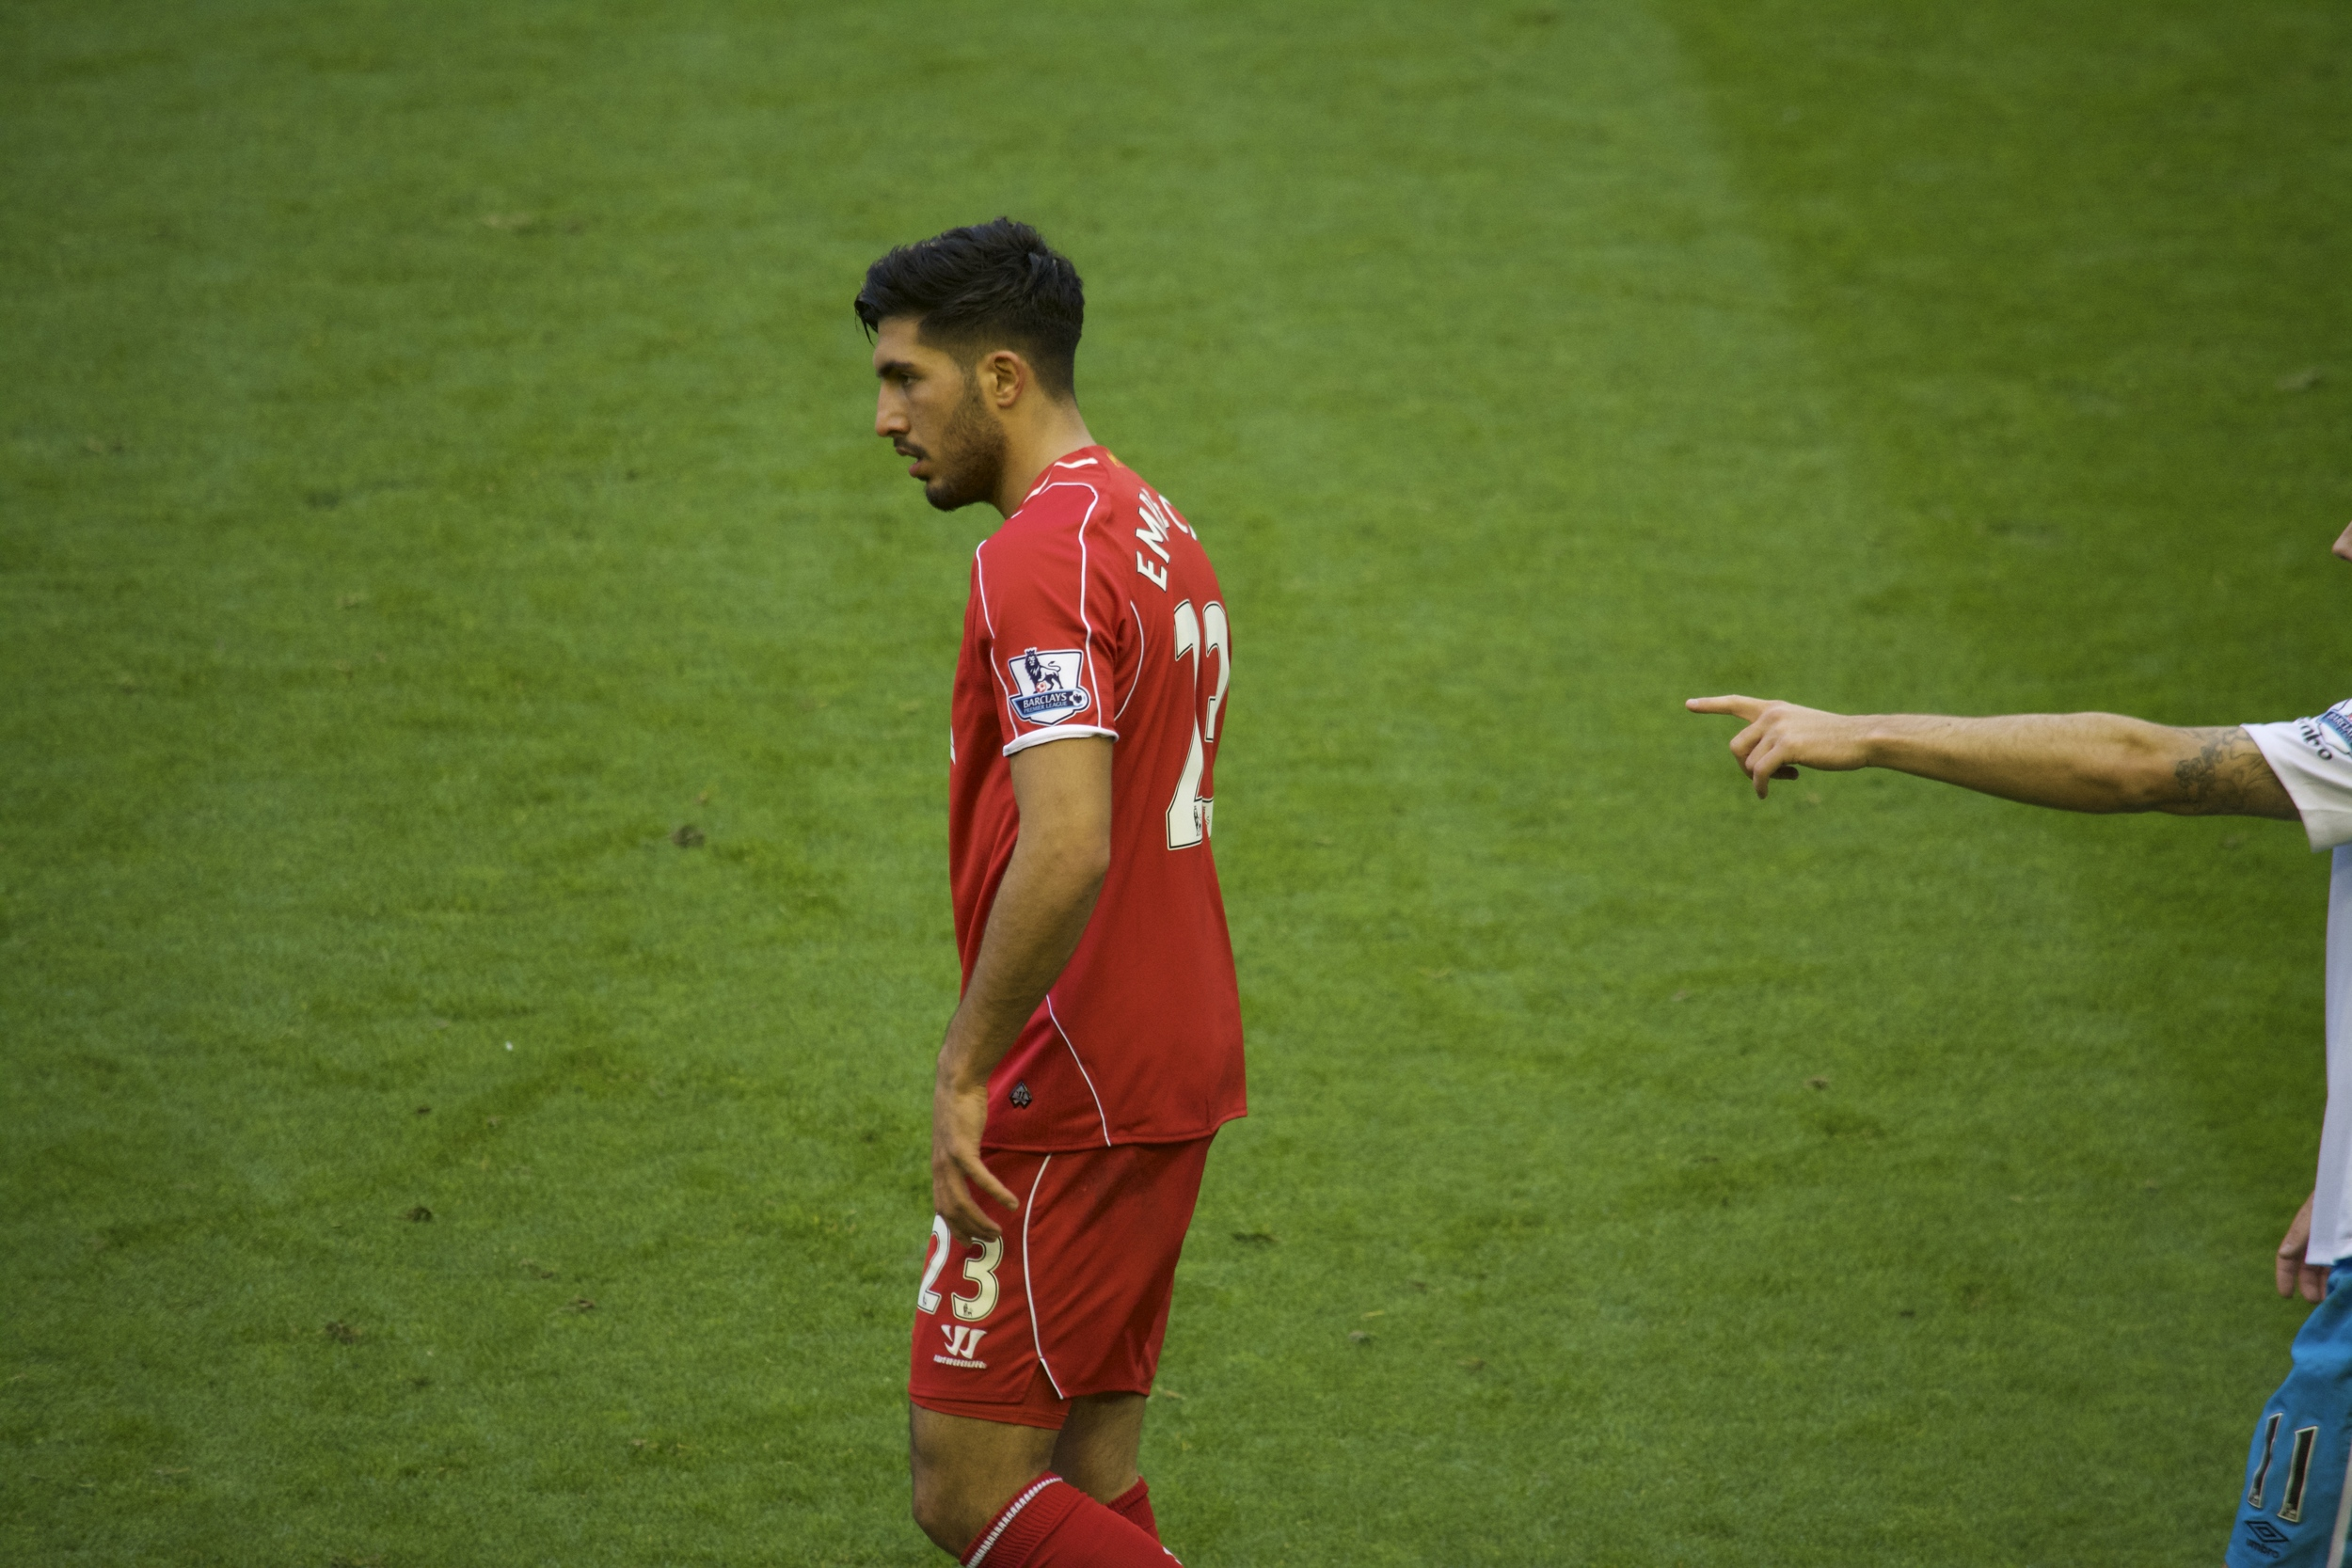 Perhaps the greatest Commons photo I could've found of Emre Can...